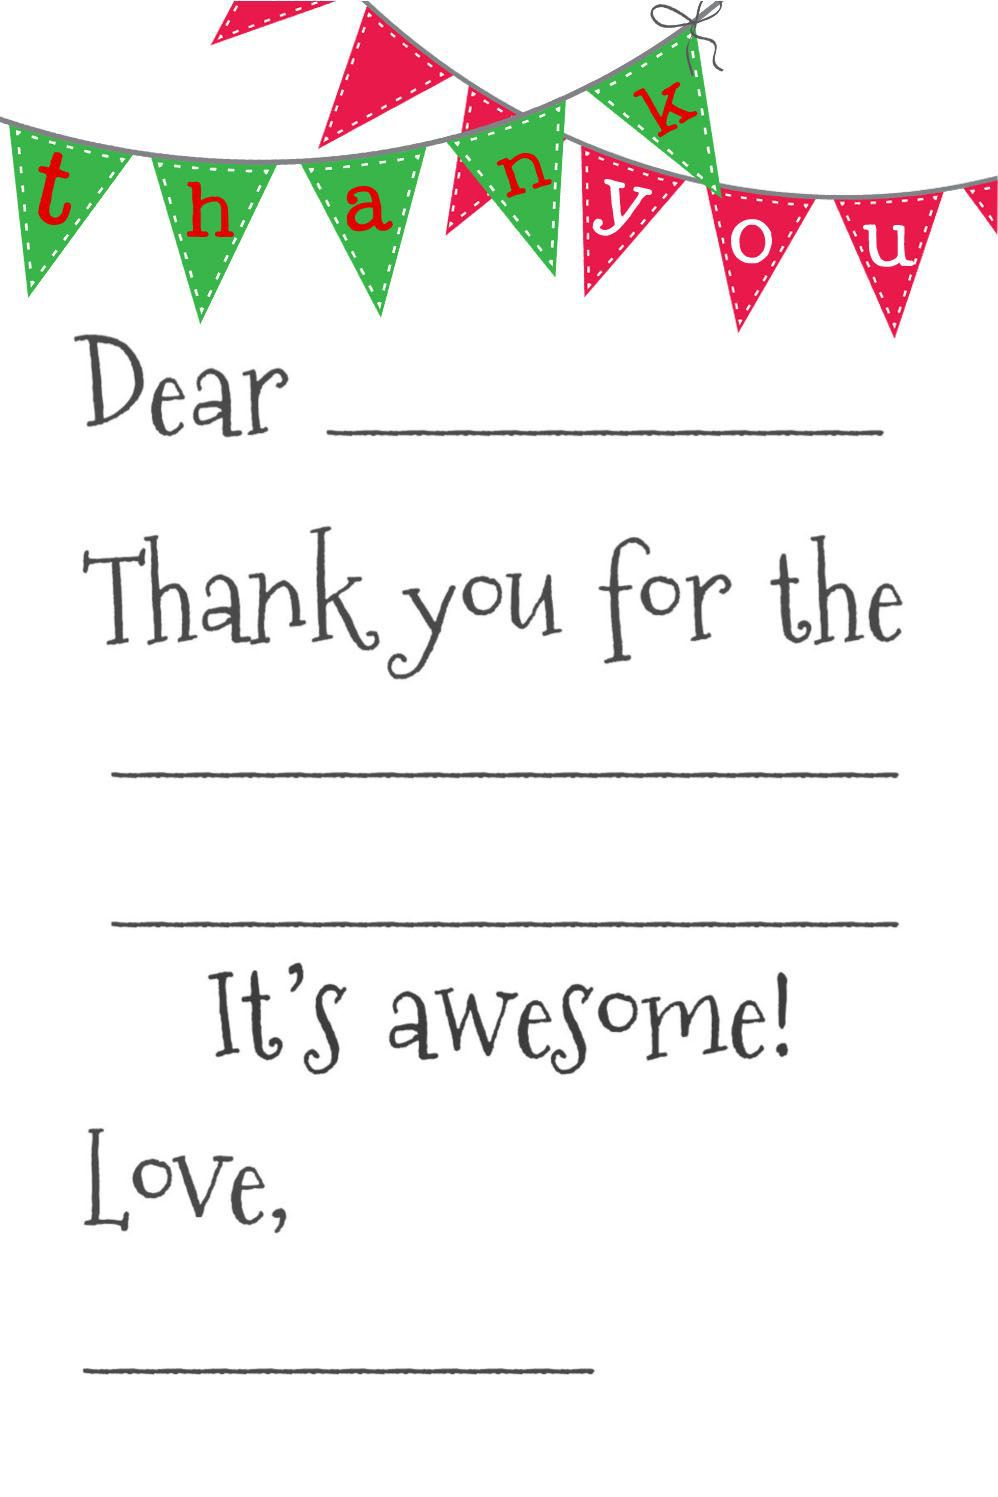 003 Incredible Free Thank You Note Template Word Photo  Card DownloadFull